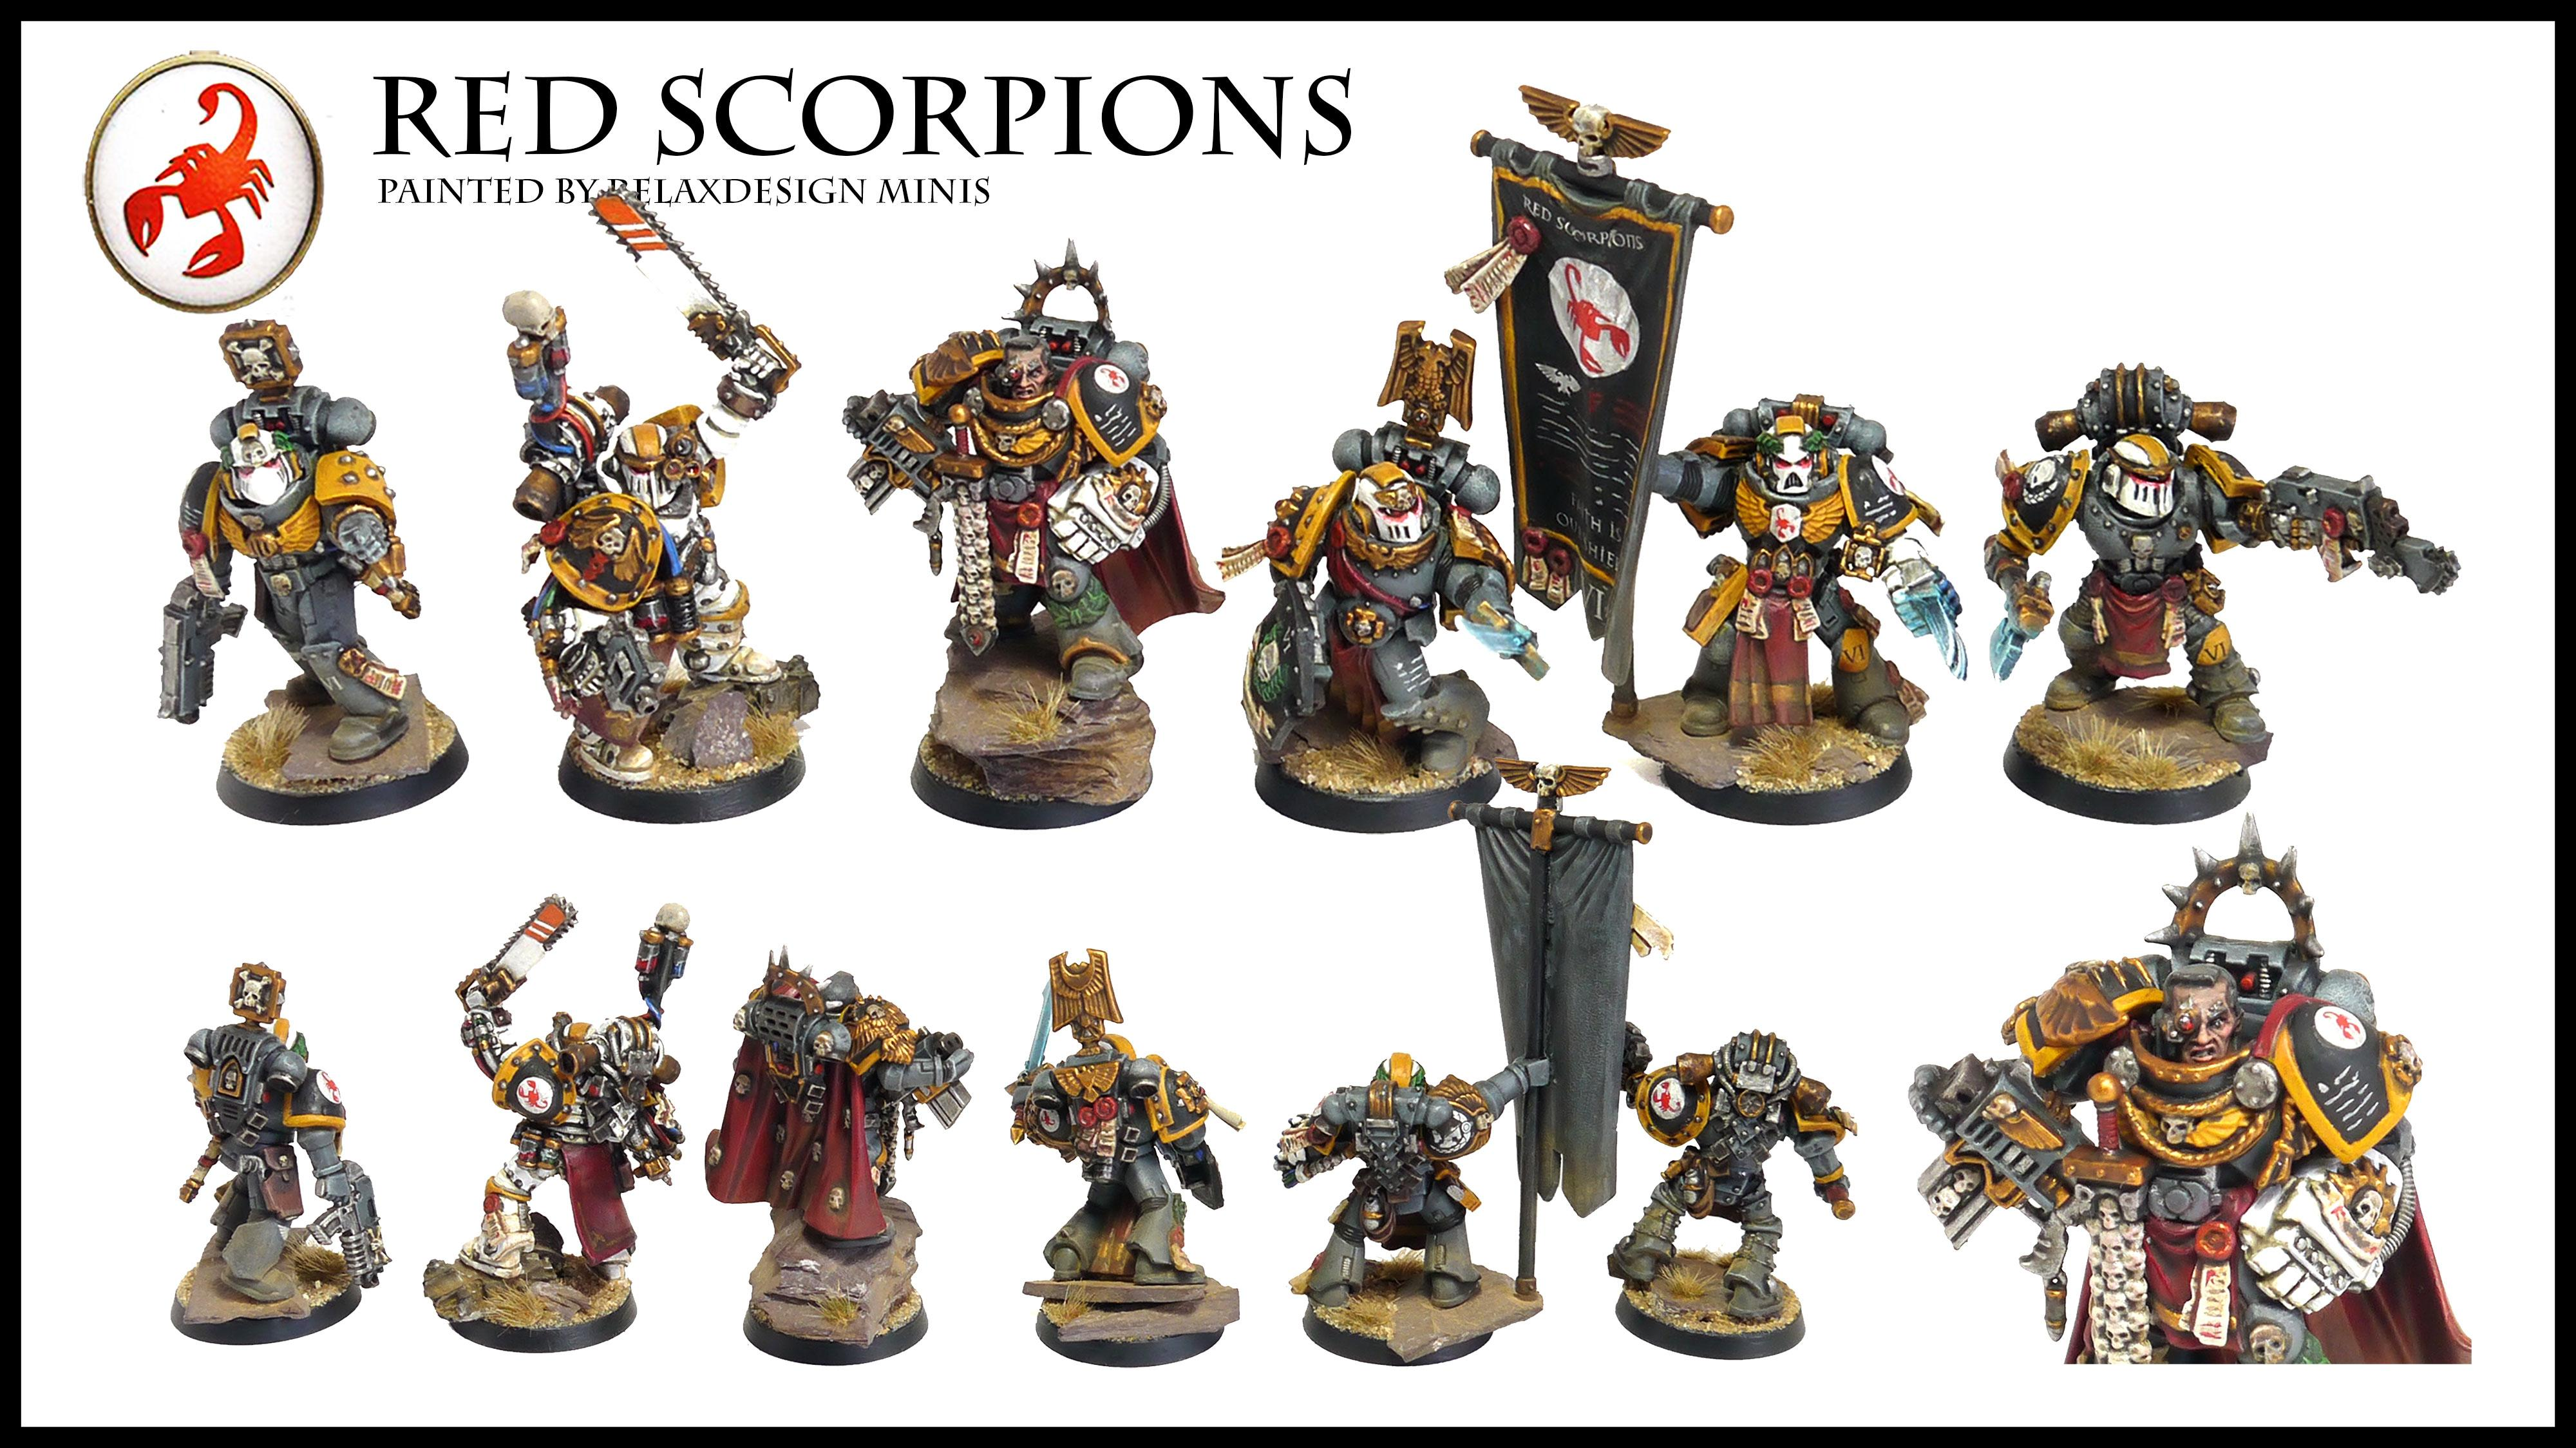 #1, Apothecary, Captain, Command Squad, Commander, Forge World, Games Workshop, Limited Edition, Red Scorpions, Space Marines, Standard Bearer, Warhammer 40,000, Warhammer Fantasy